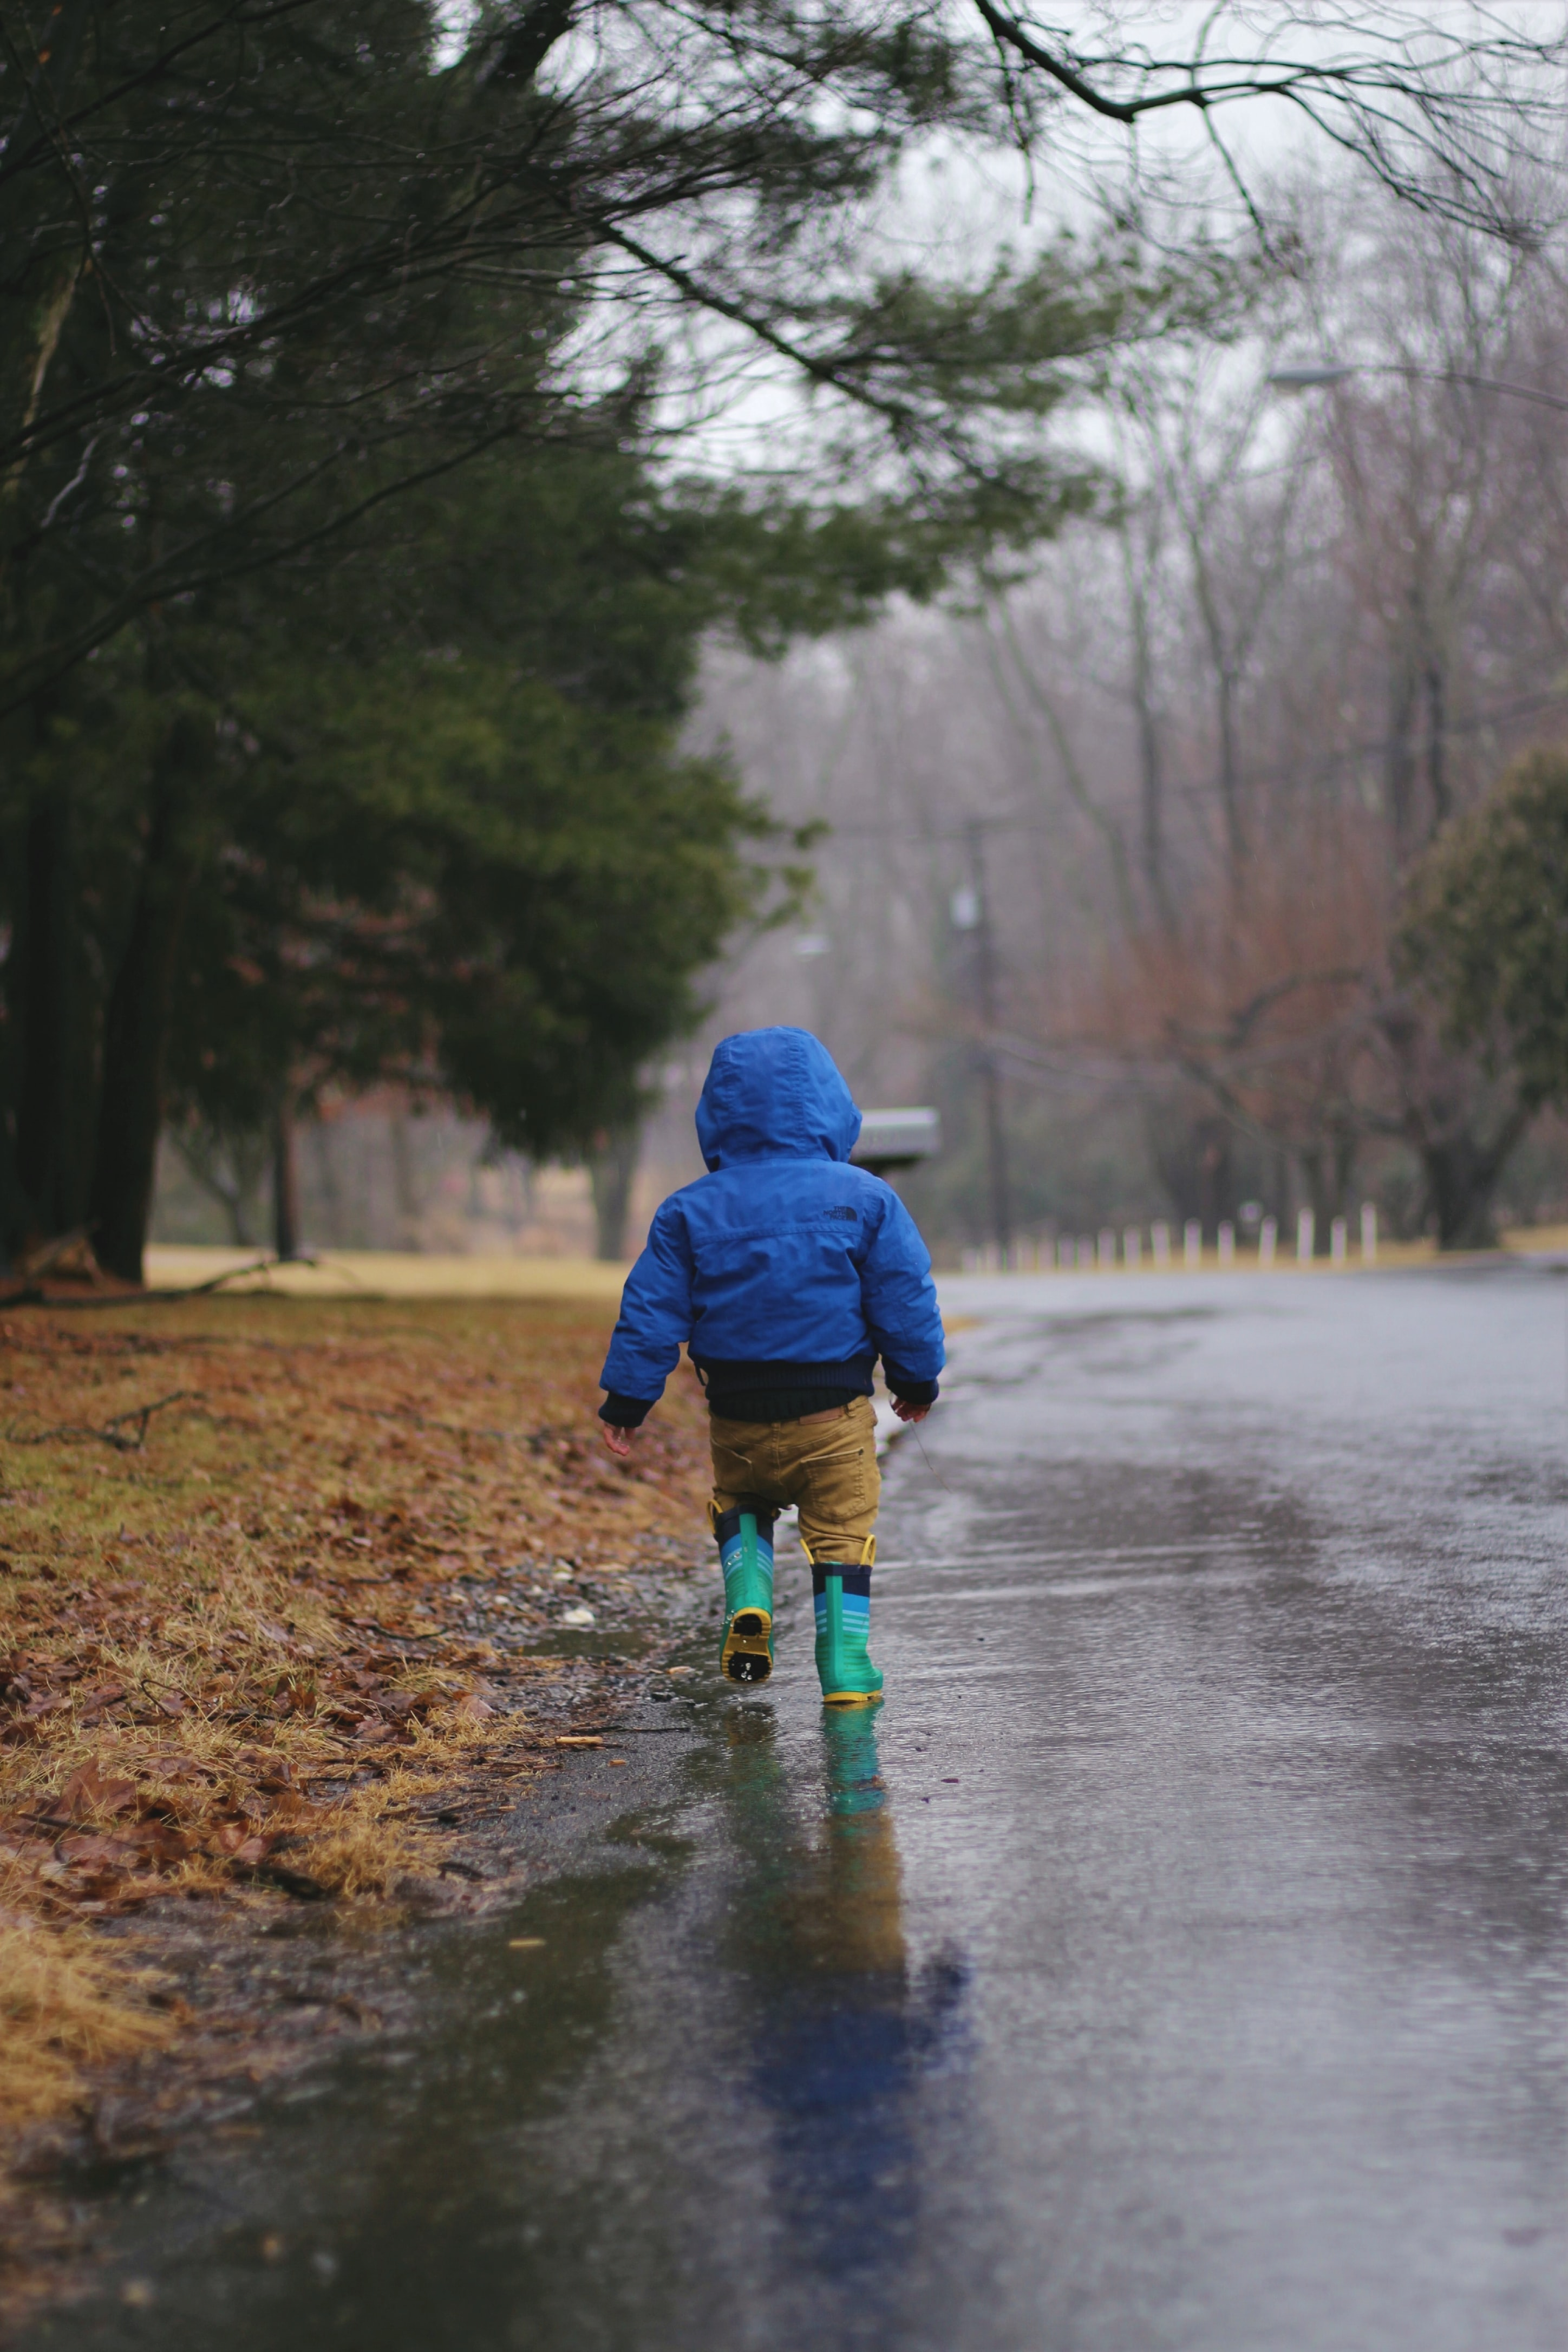 toddler walking on road while raining